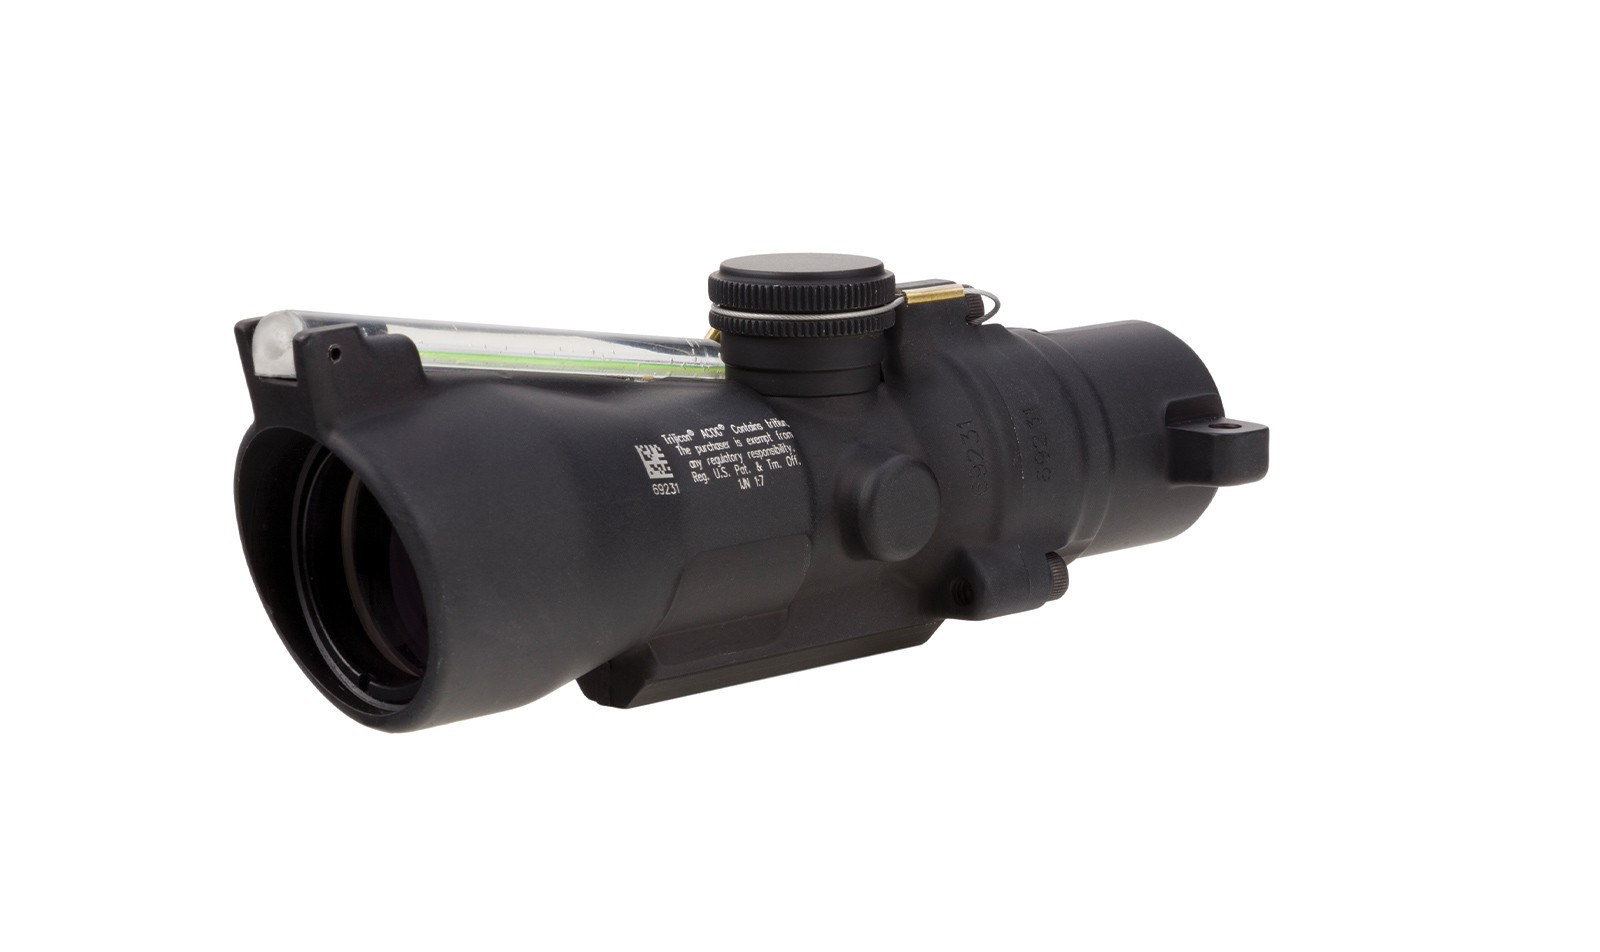 Trijicon ACOG® 3x24 BAC Riflescope - .223 / 55 Grain